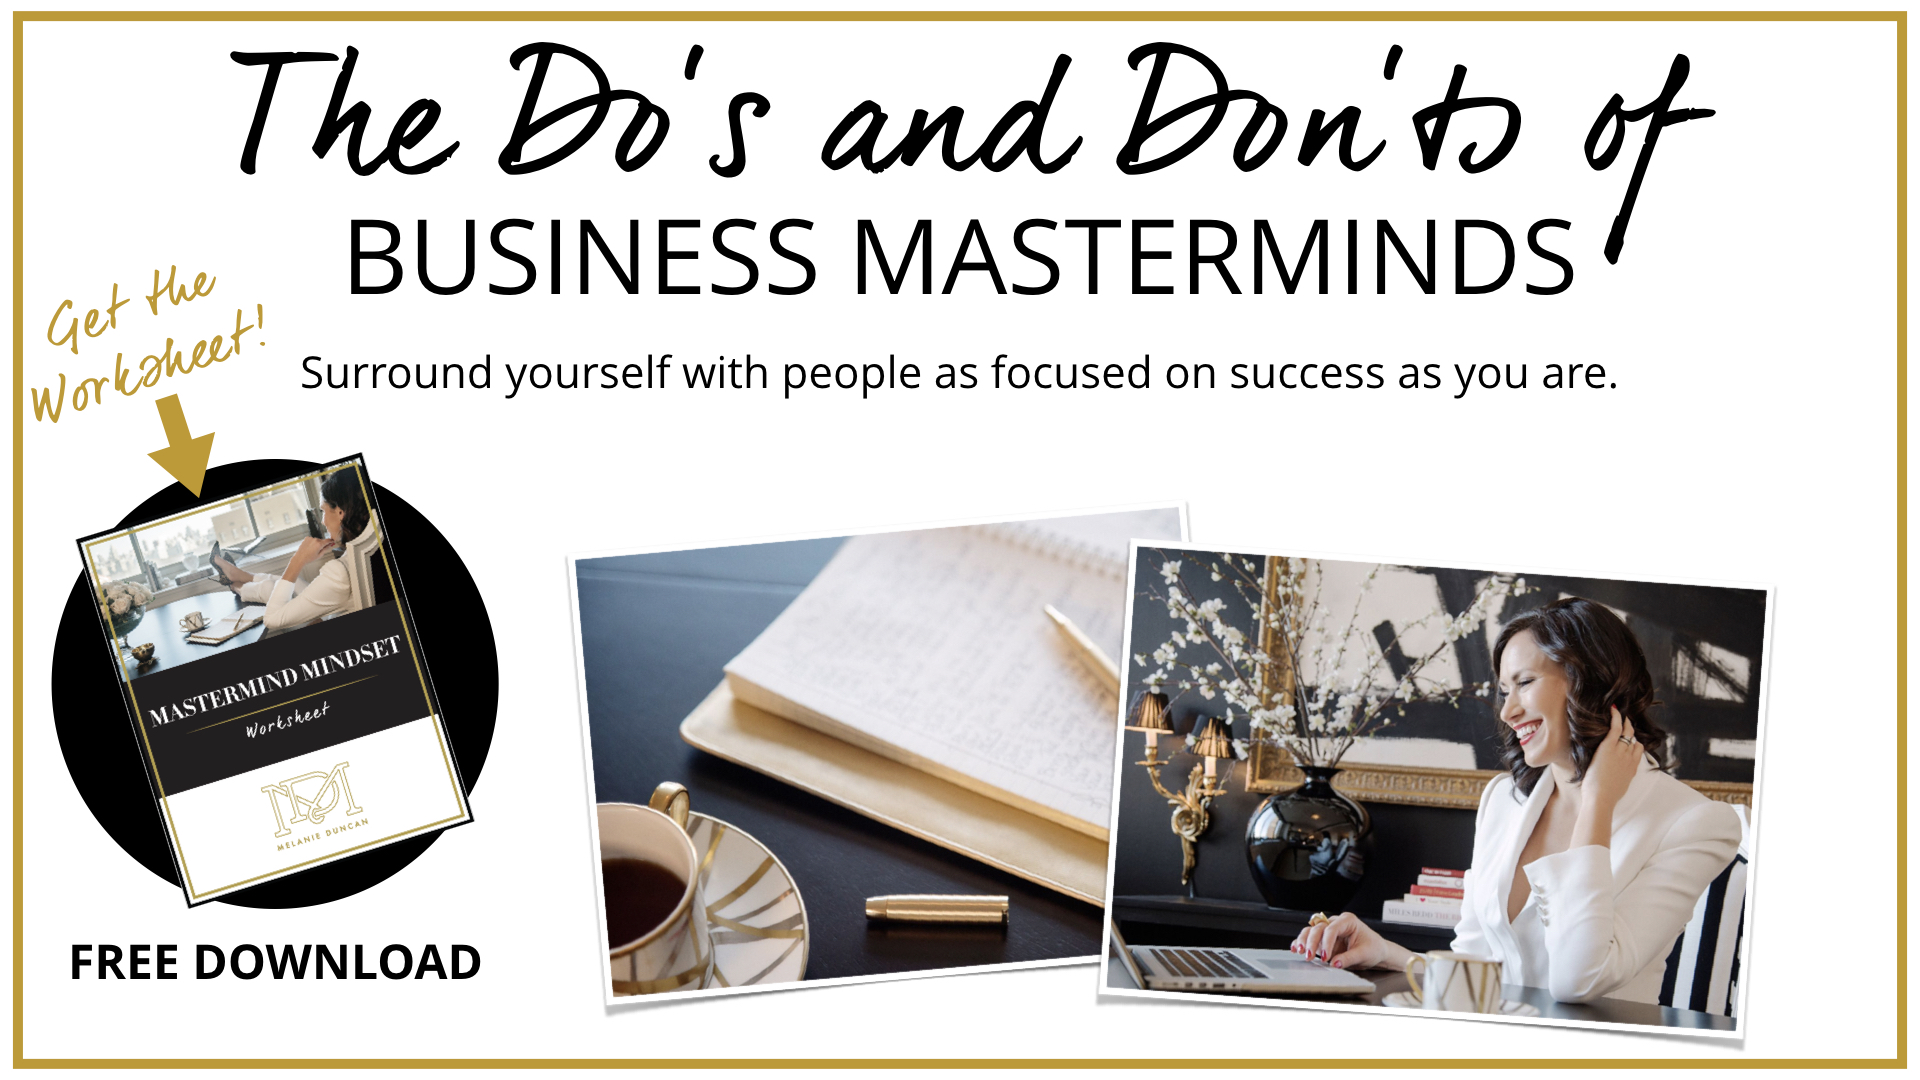 The Do's and Don'ts of Business Masterminds -